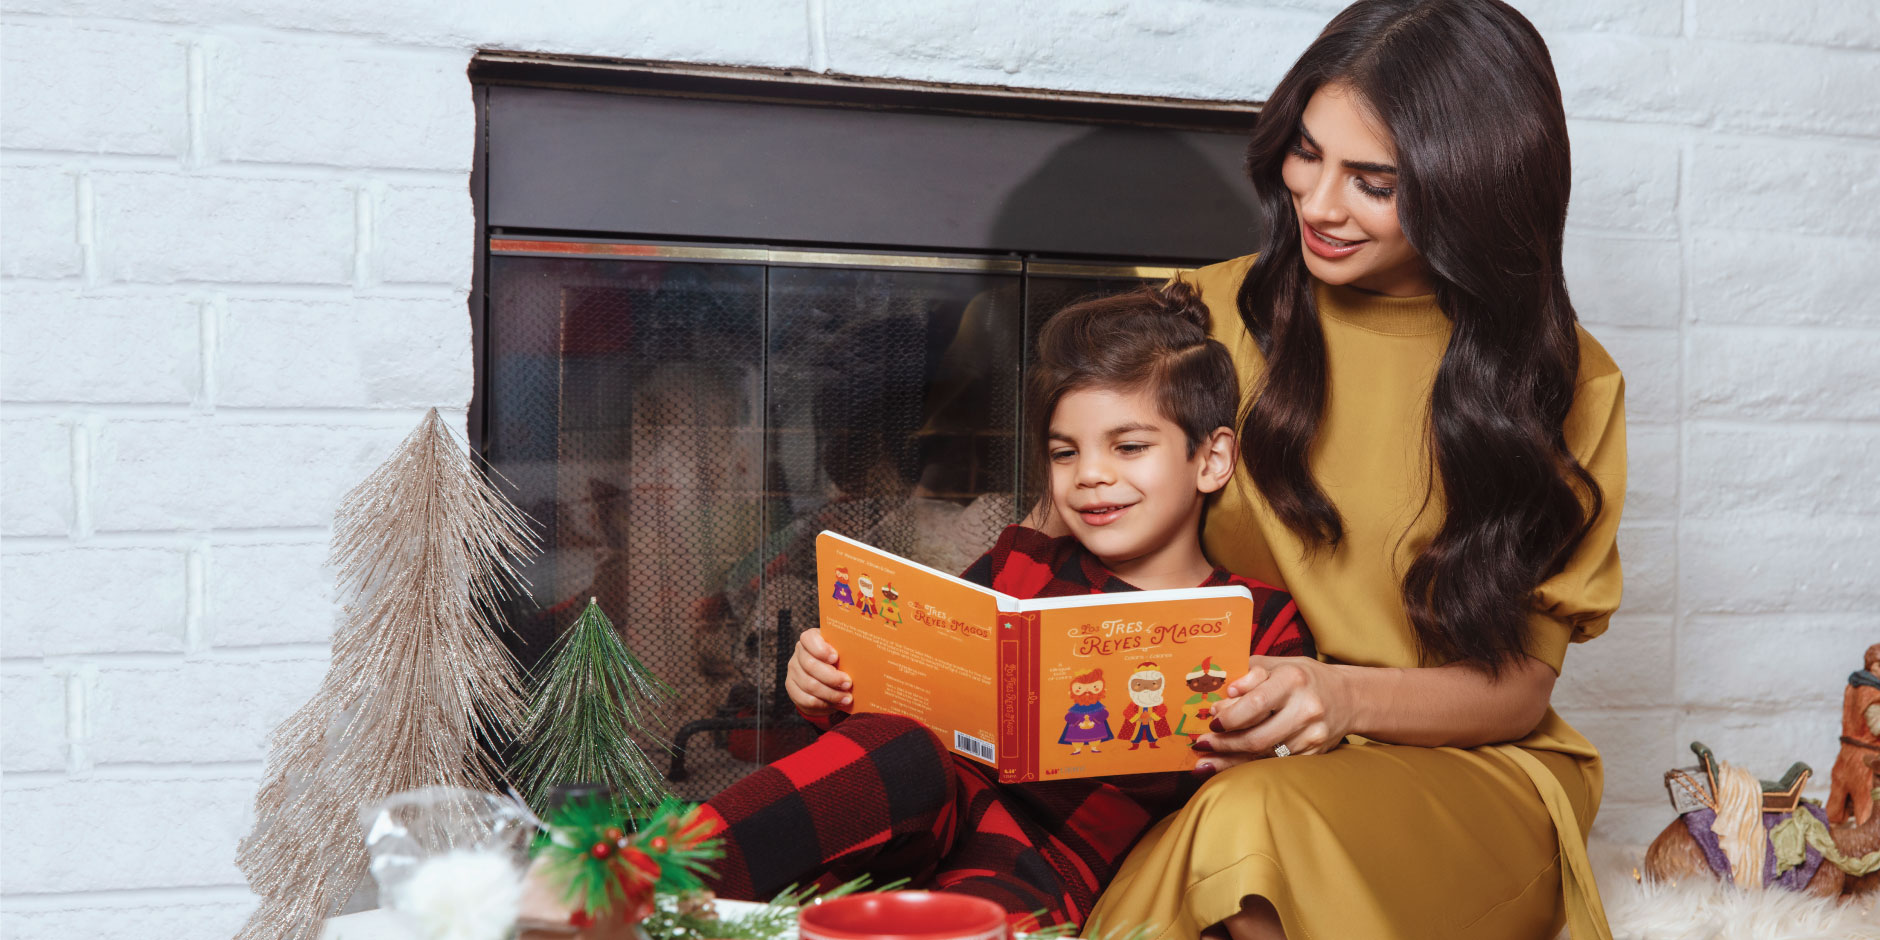 Alejandra Espinoza reads a book to her son, Matteo.